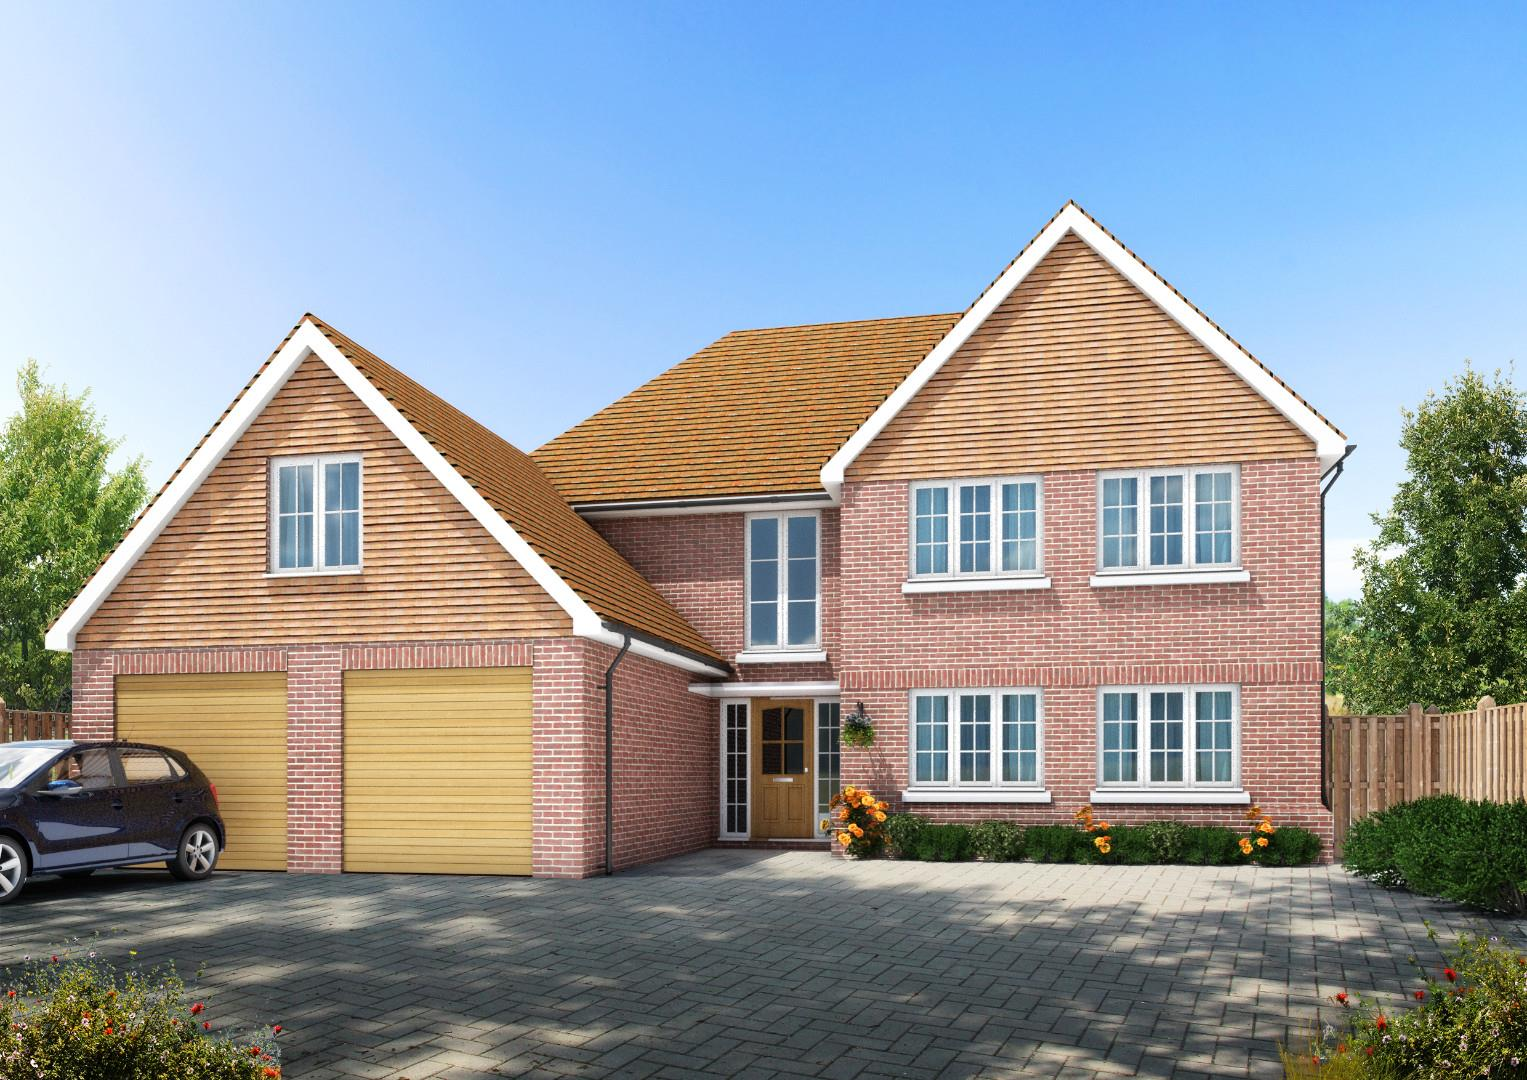 4 Bedroom House For Sale Park Avenue Broadstairs Ct Ct10 2xl